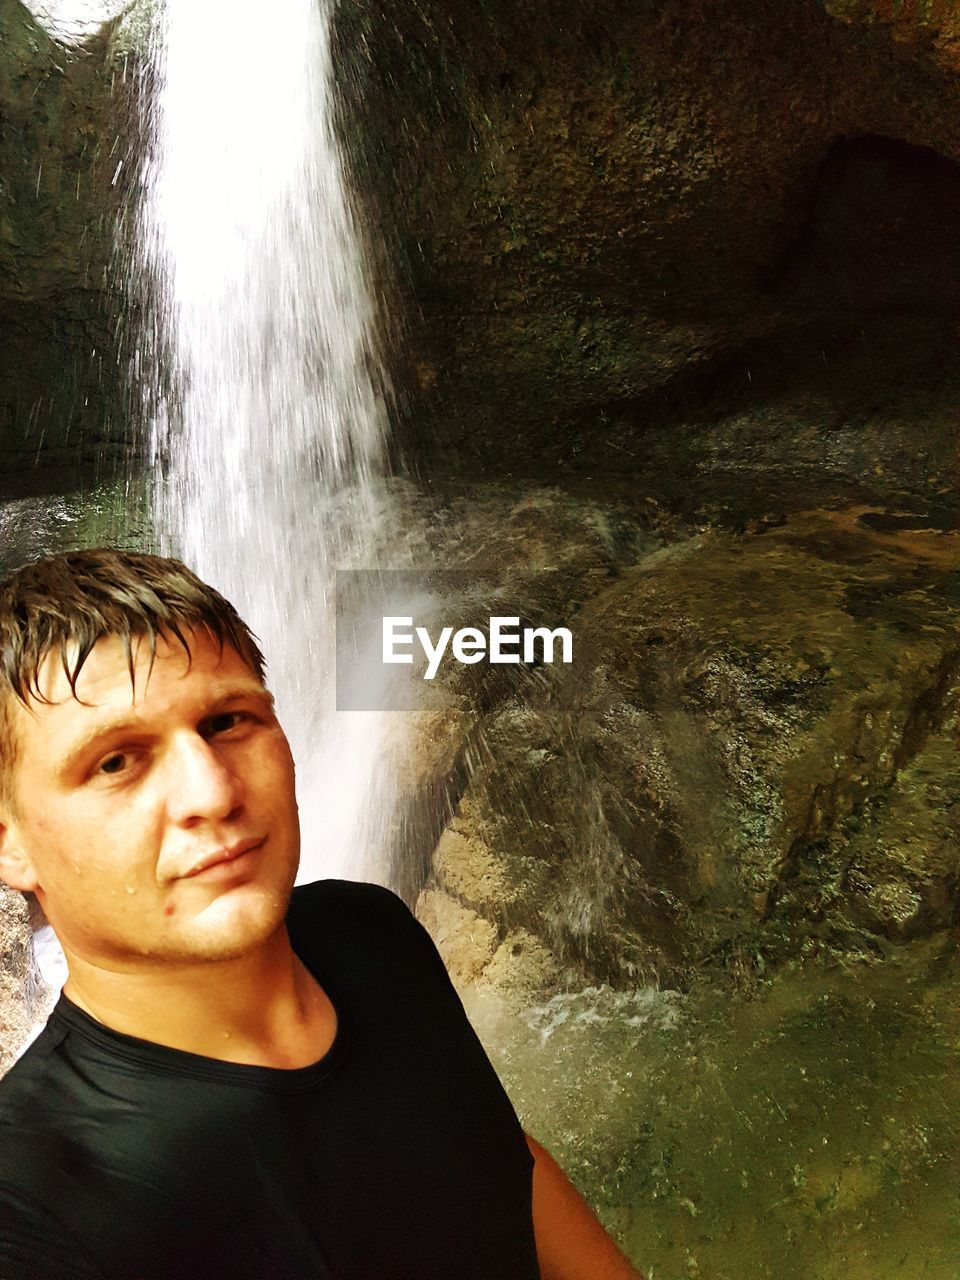 one person, water, real people, waterfall, lifestyles, leisure activity, portrait, motion, headshot, young adult, nature, flowing water, long exposure, beauty in nature, rock, young men, scenics - nature, day, flowing, outdoors, power in nature